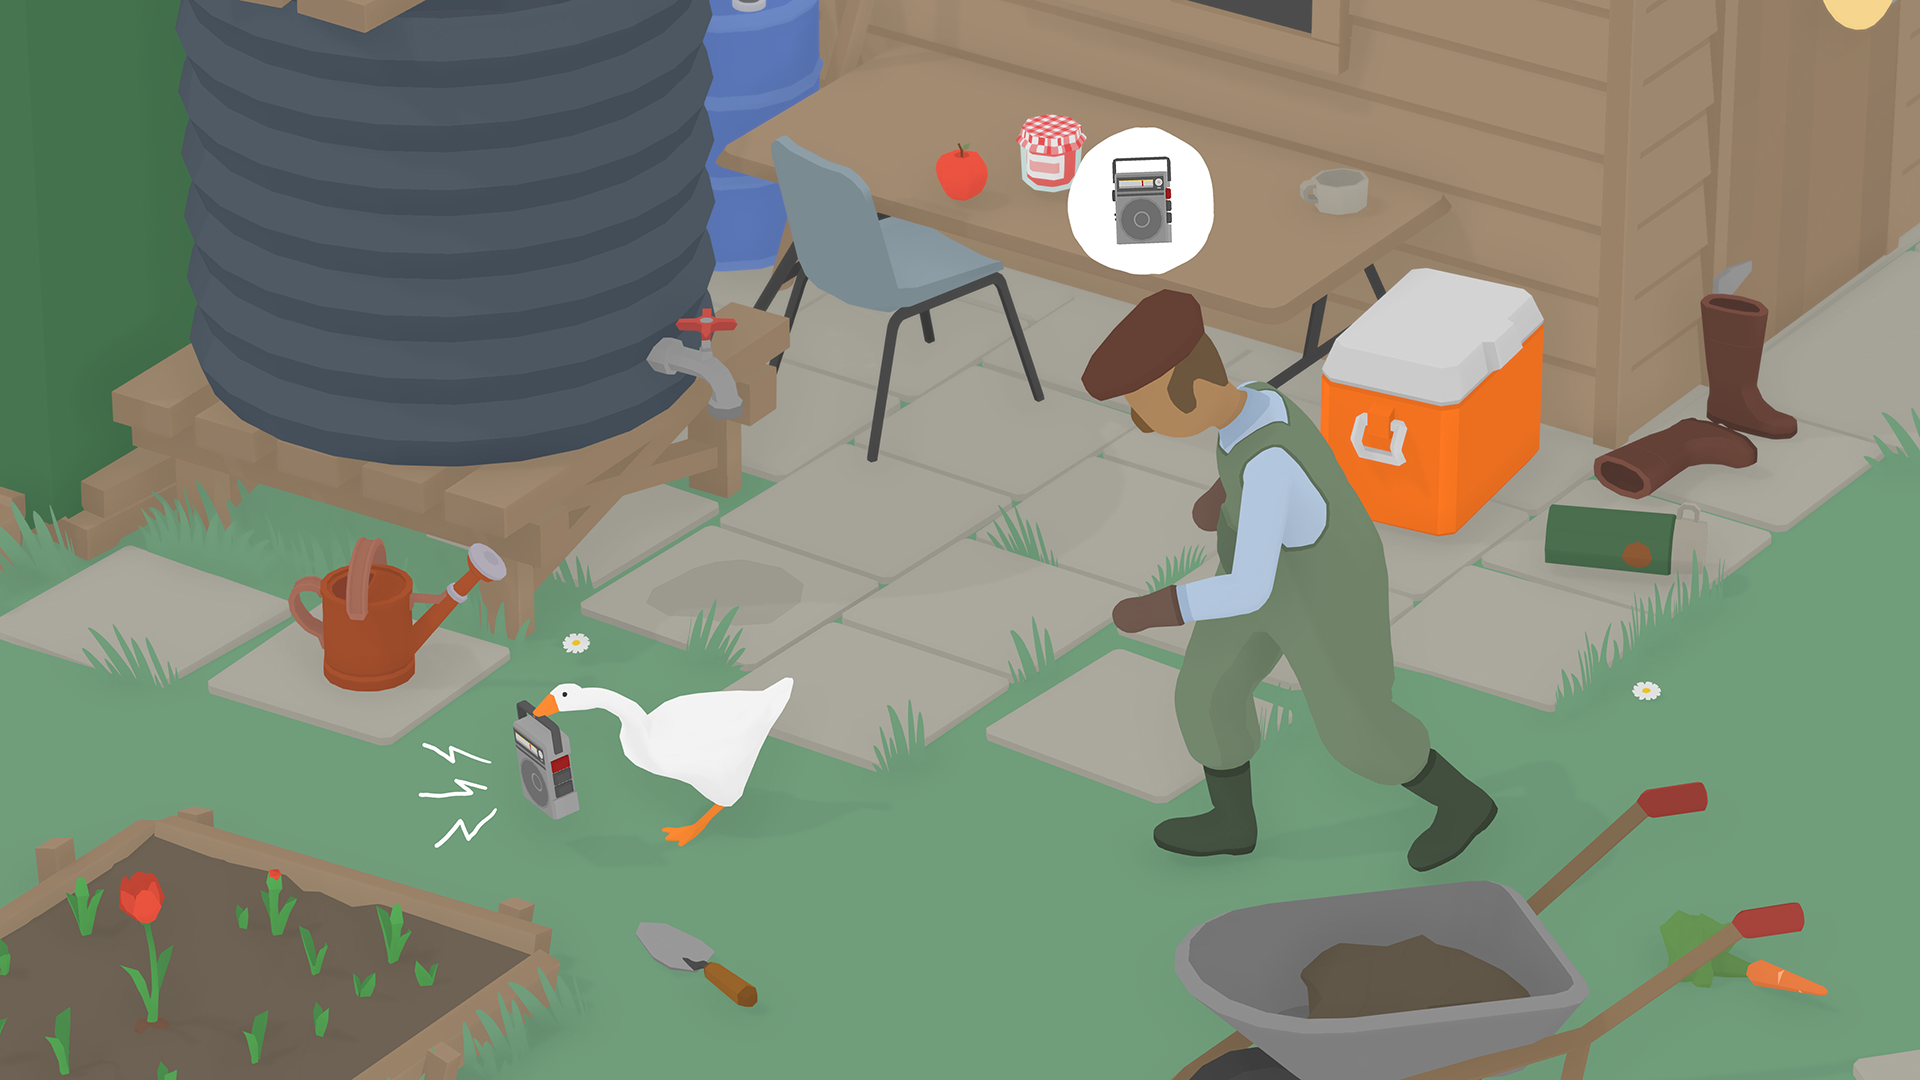 Untitled Goose Game delayed to late 2019